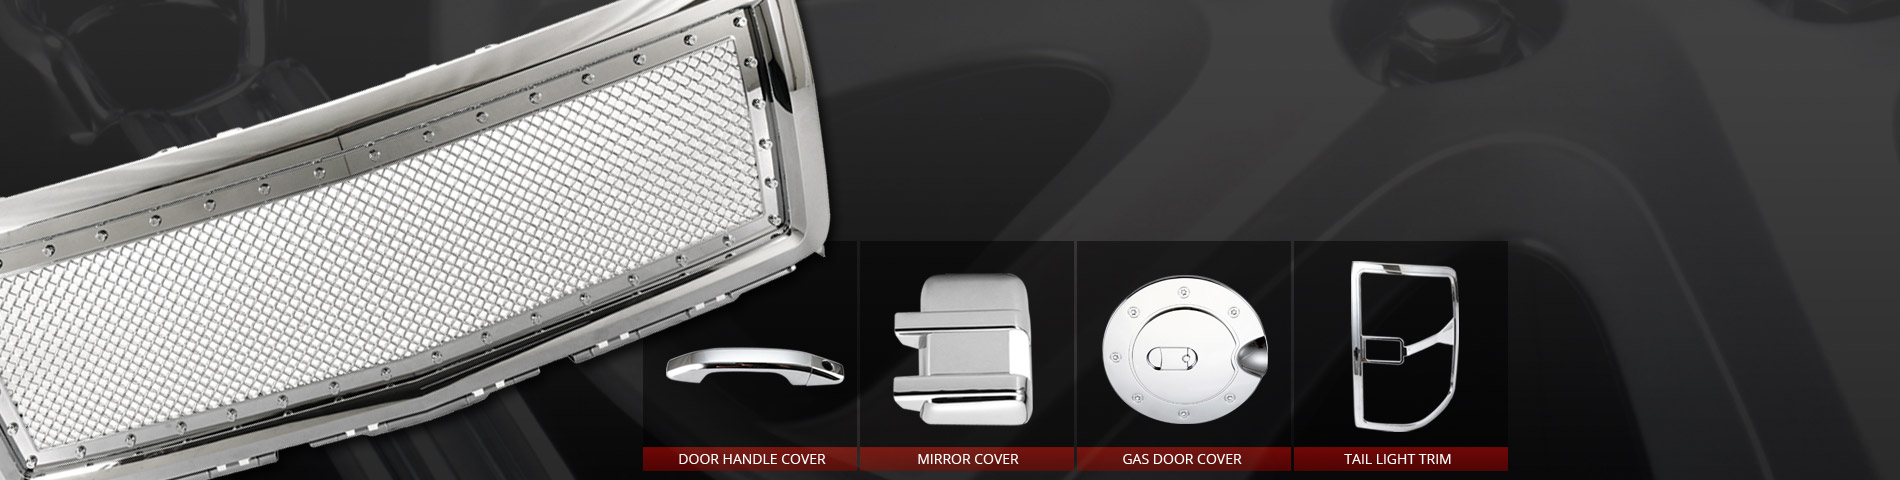 Professional Plastic Chrome Auto Accessory Manufacturer Welcome To Contact For New Mold Building